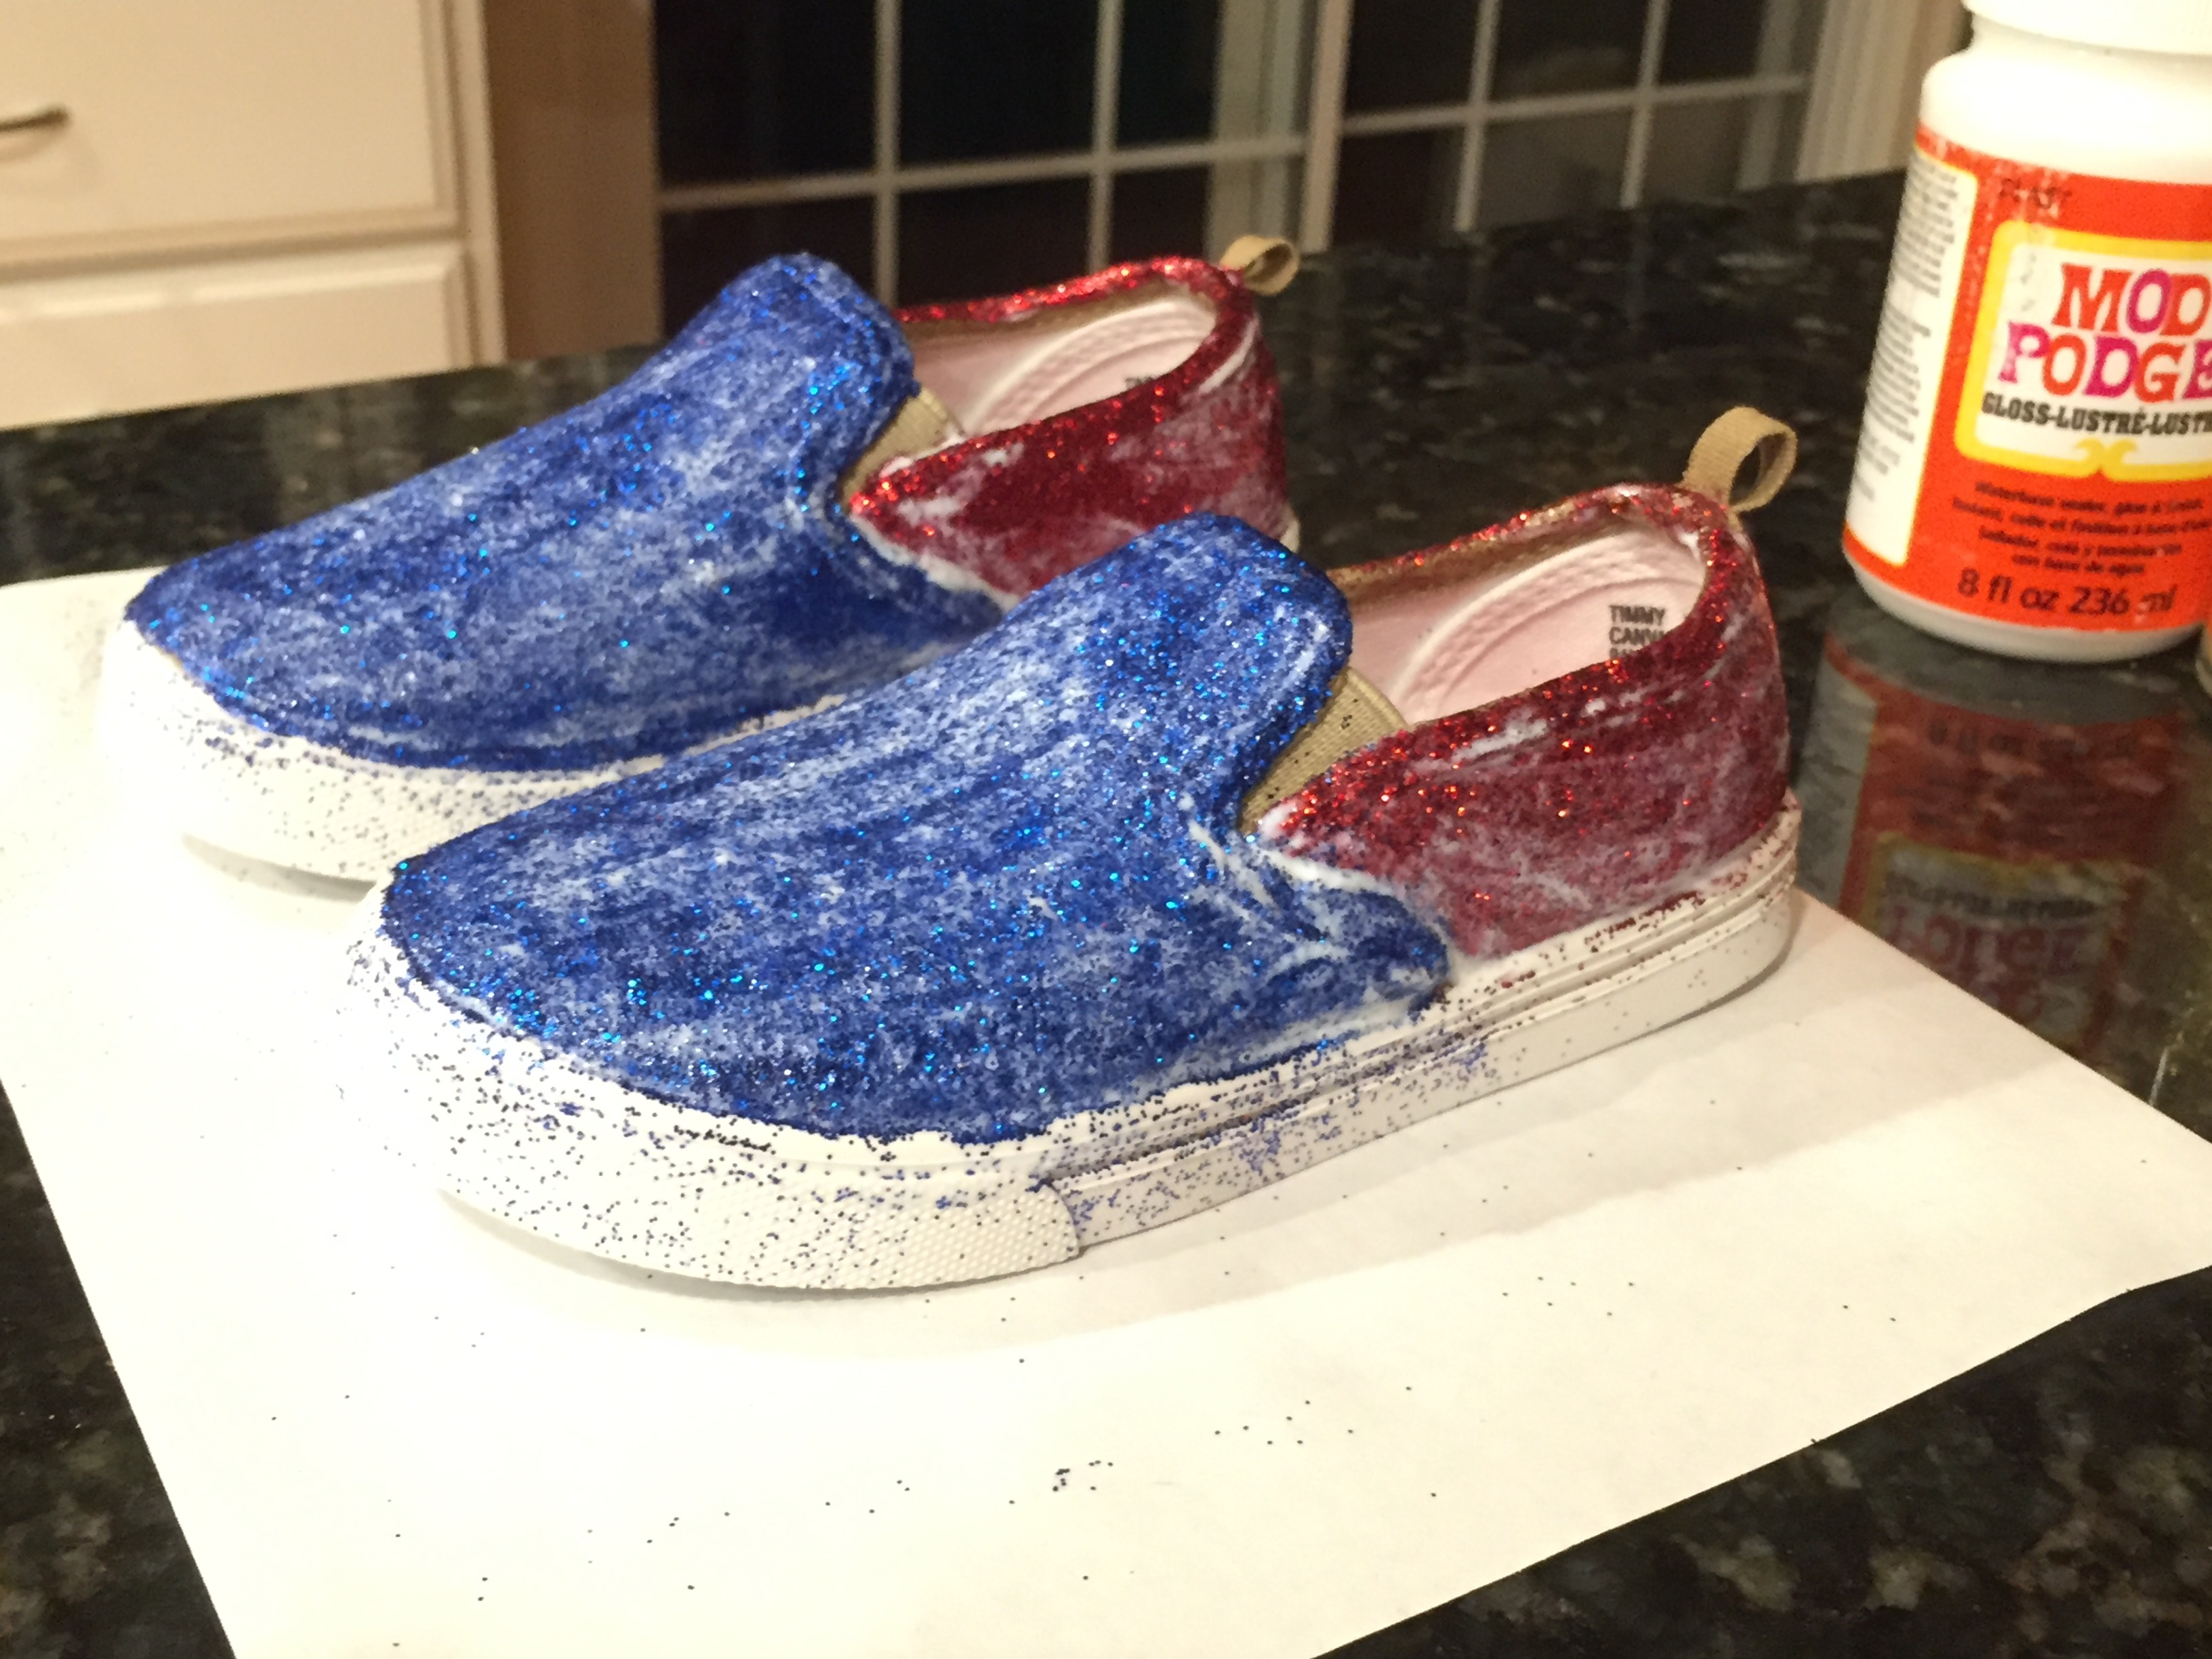 Once the last coat of glitter is dry and you're satisfied with the appearance of the shoes, you need to prepare the shoes for the sealant. If you got glitter anywhere you didn't want it, chip it off with your fingernails of wipe it away with a cloth dampened with hot water. Inspect your shoes.